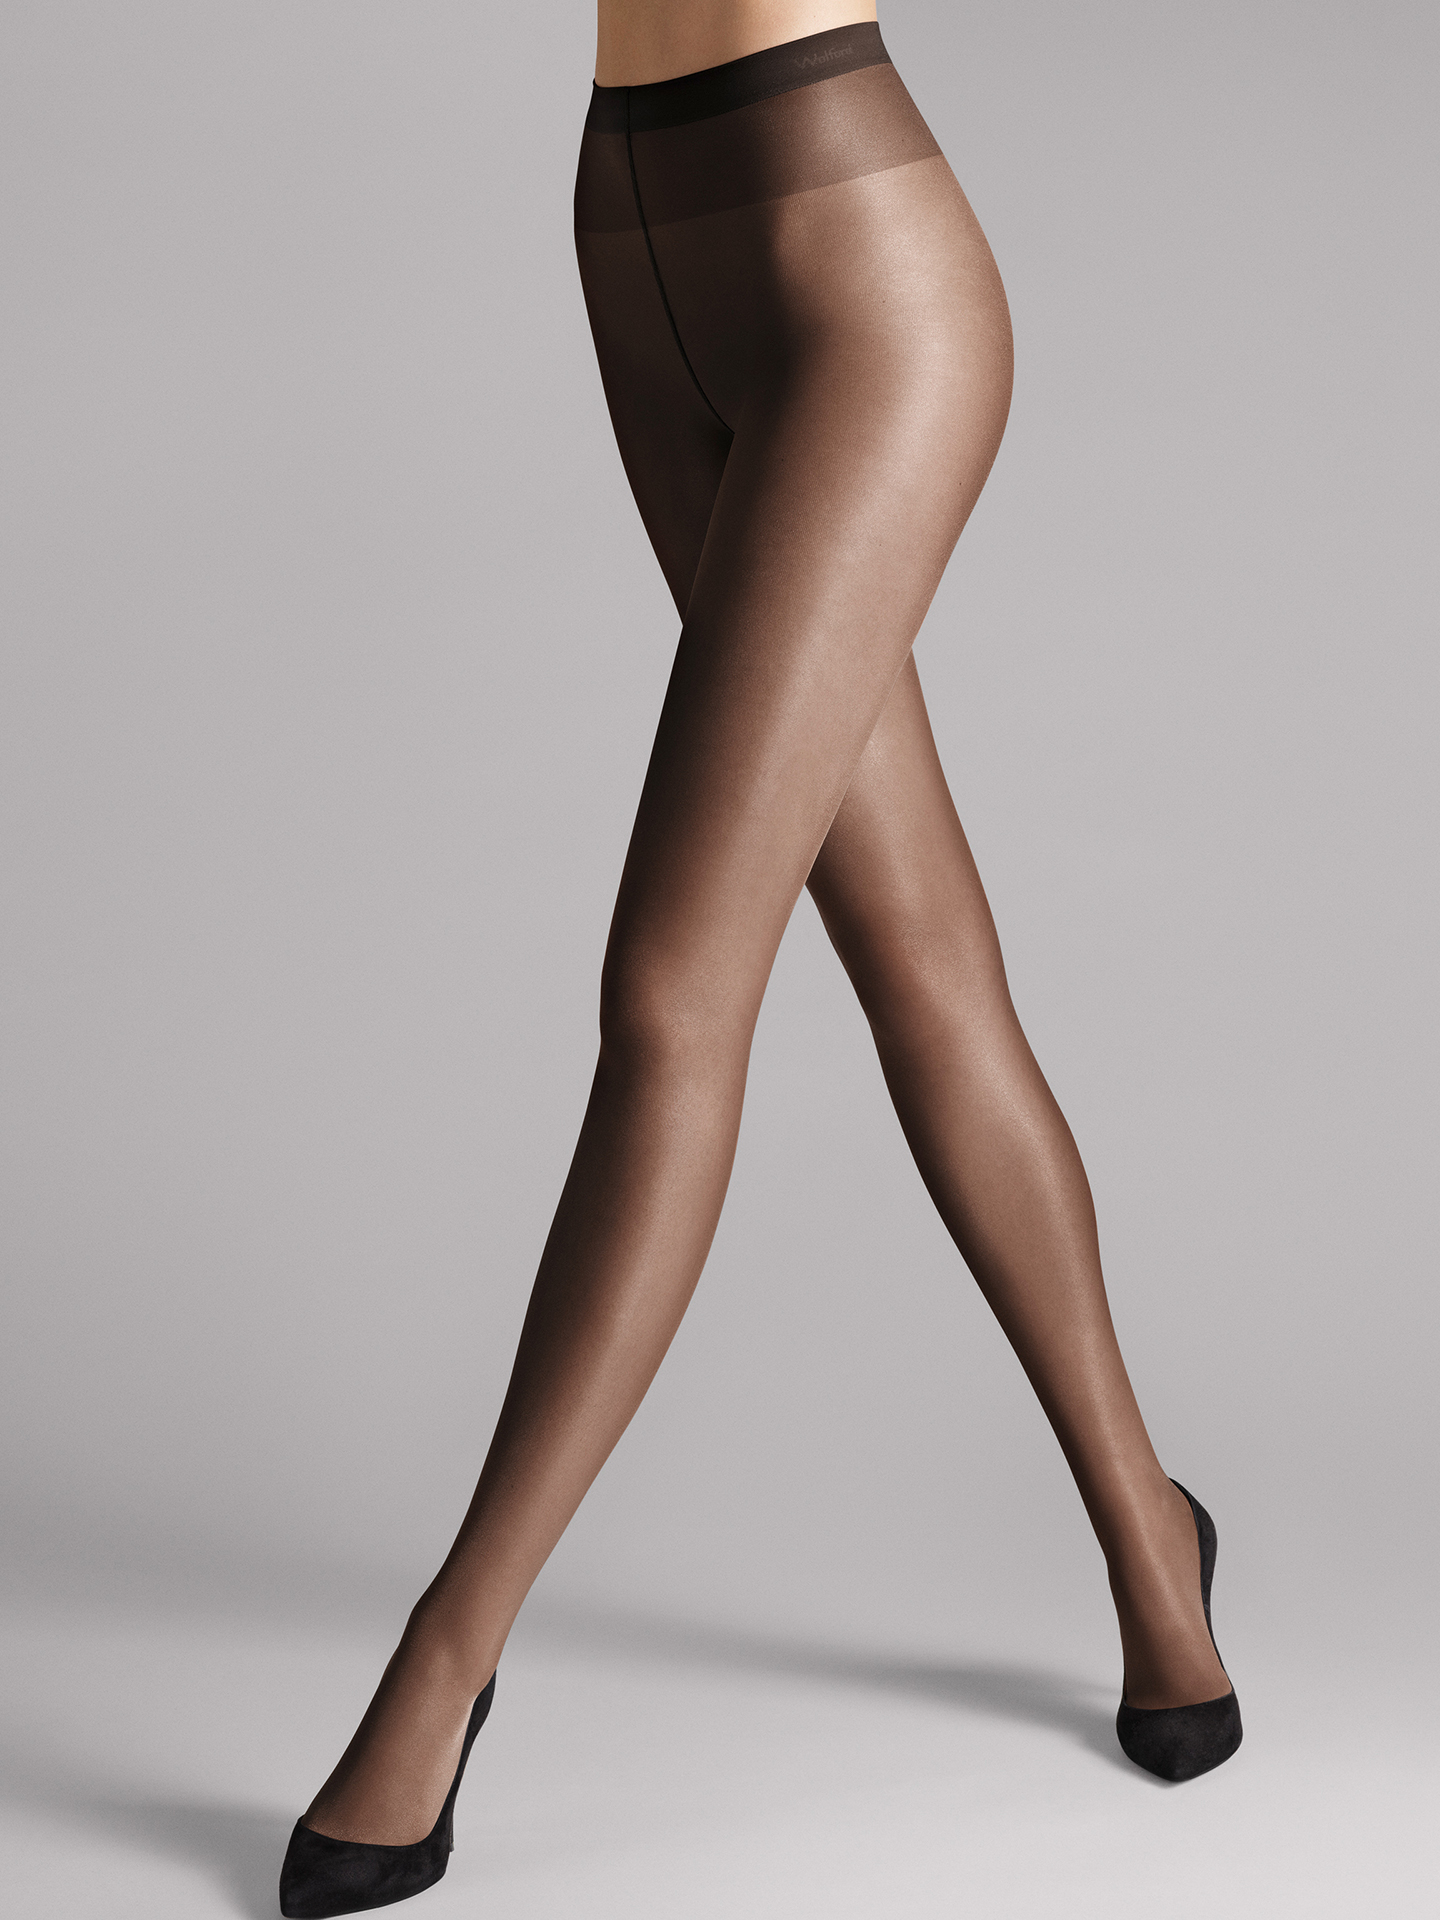 Wolford Apparel & Accessories > Clothing > Collant Satin Touch 20 - 7212 - XL